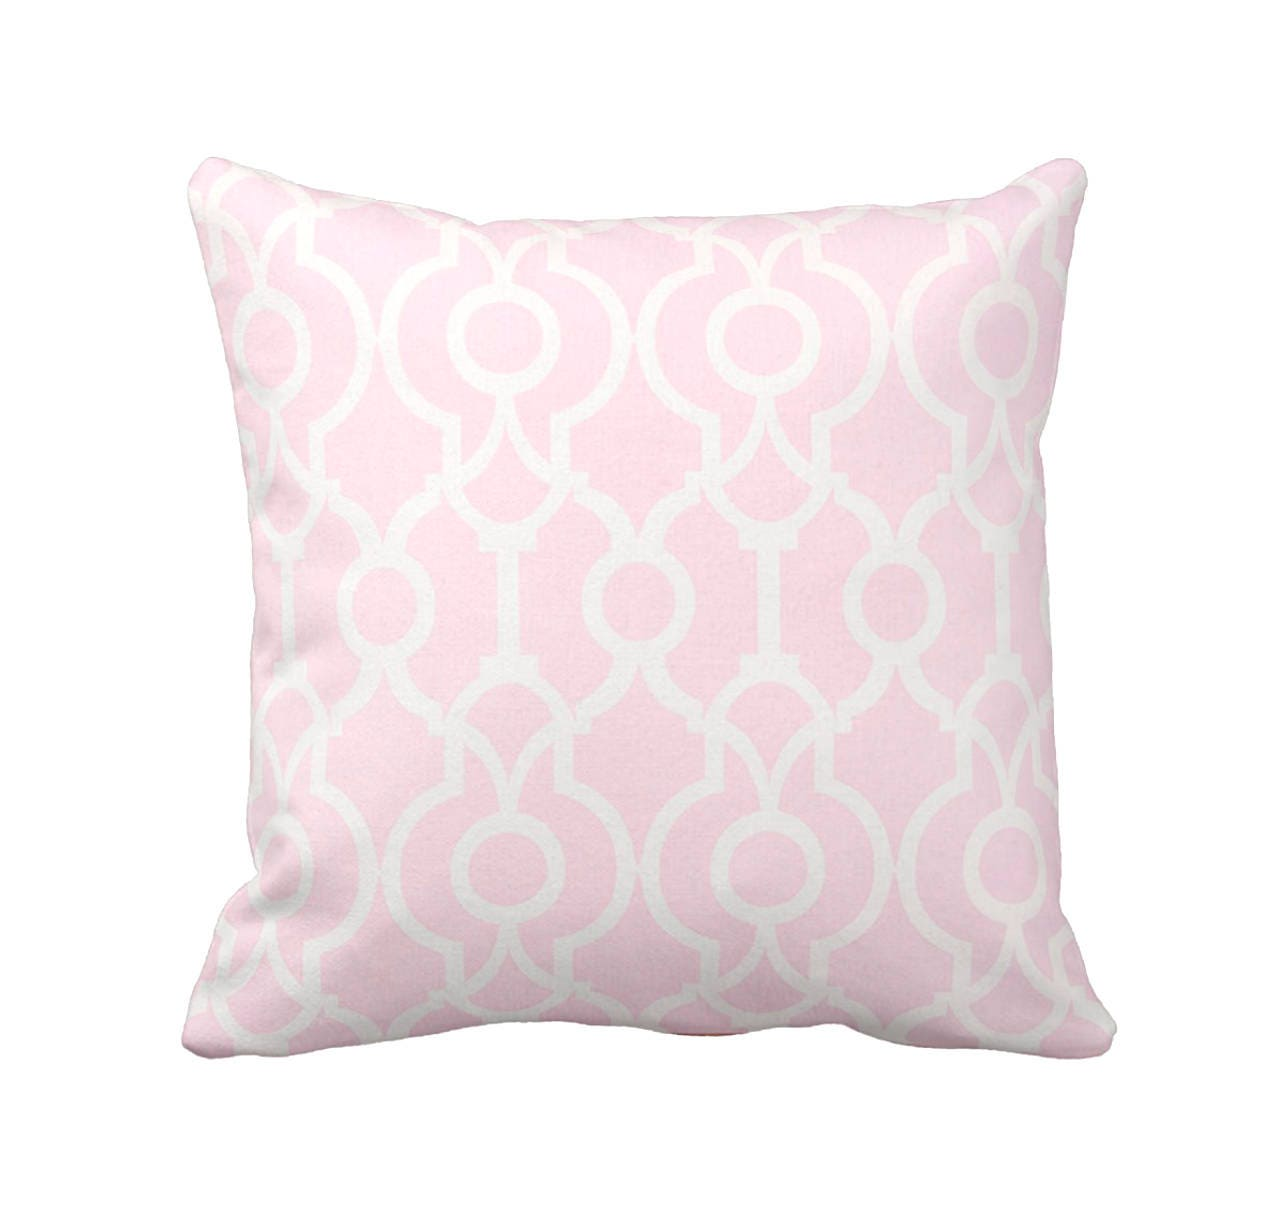 Blush Pink Decorative Pillow : Millennial Pink Pillow Cover Blush Pink Pillows Pink Throw